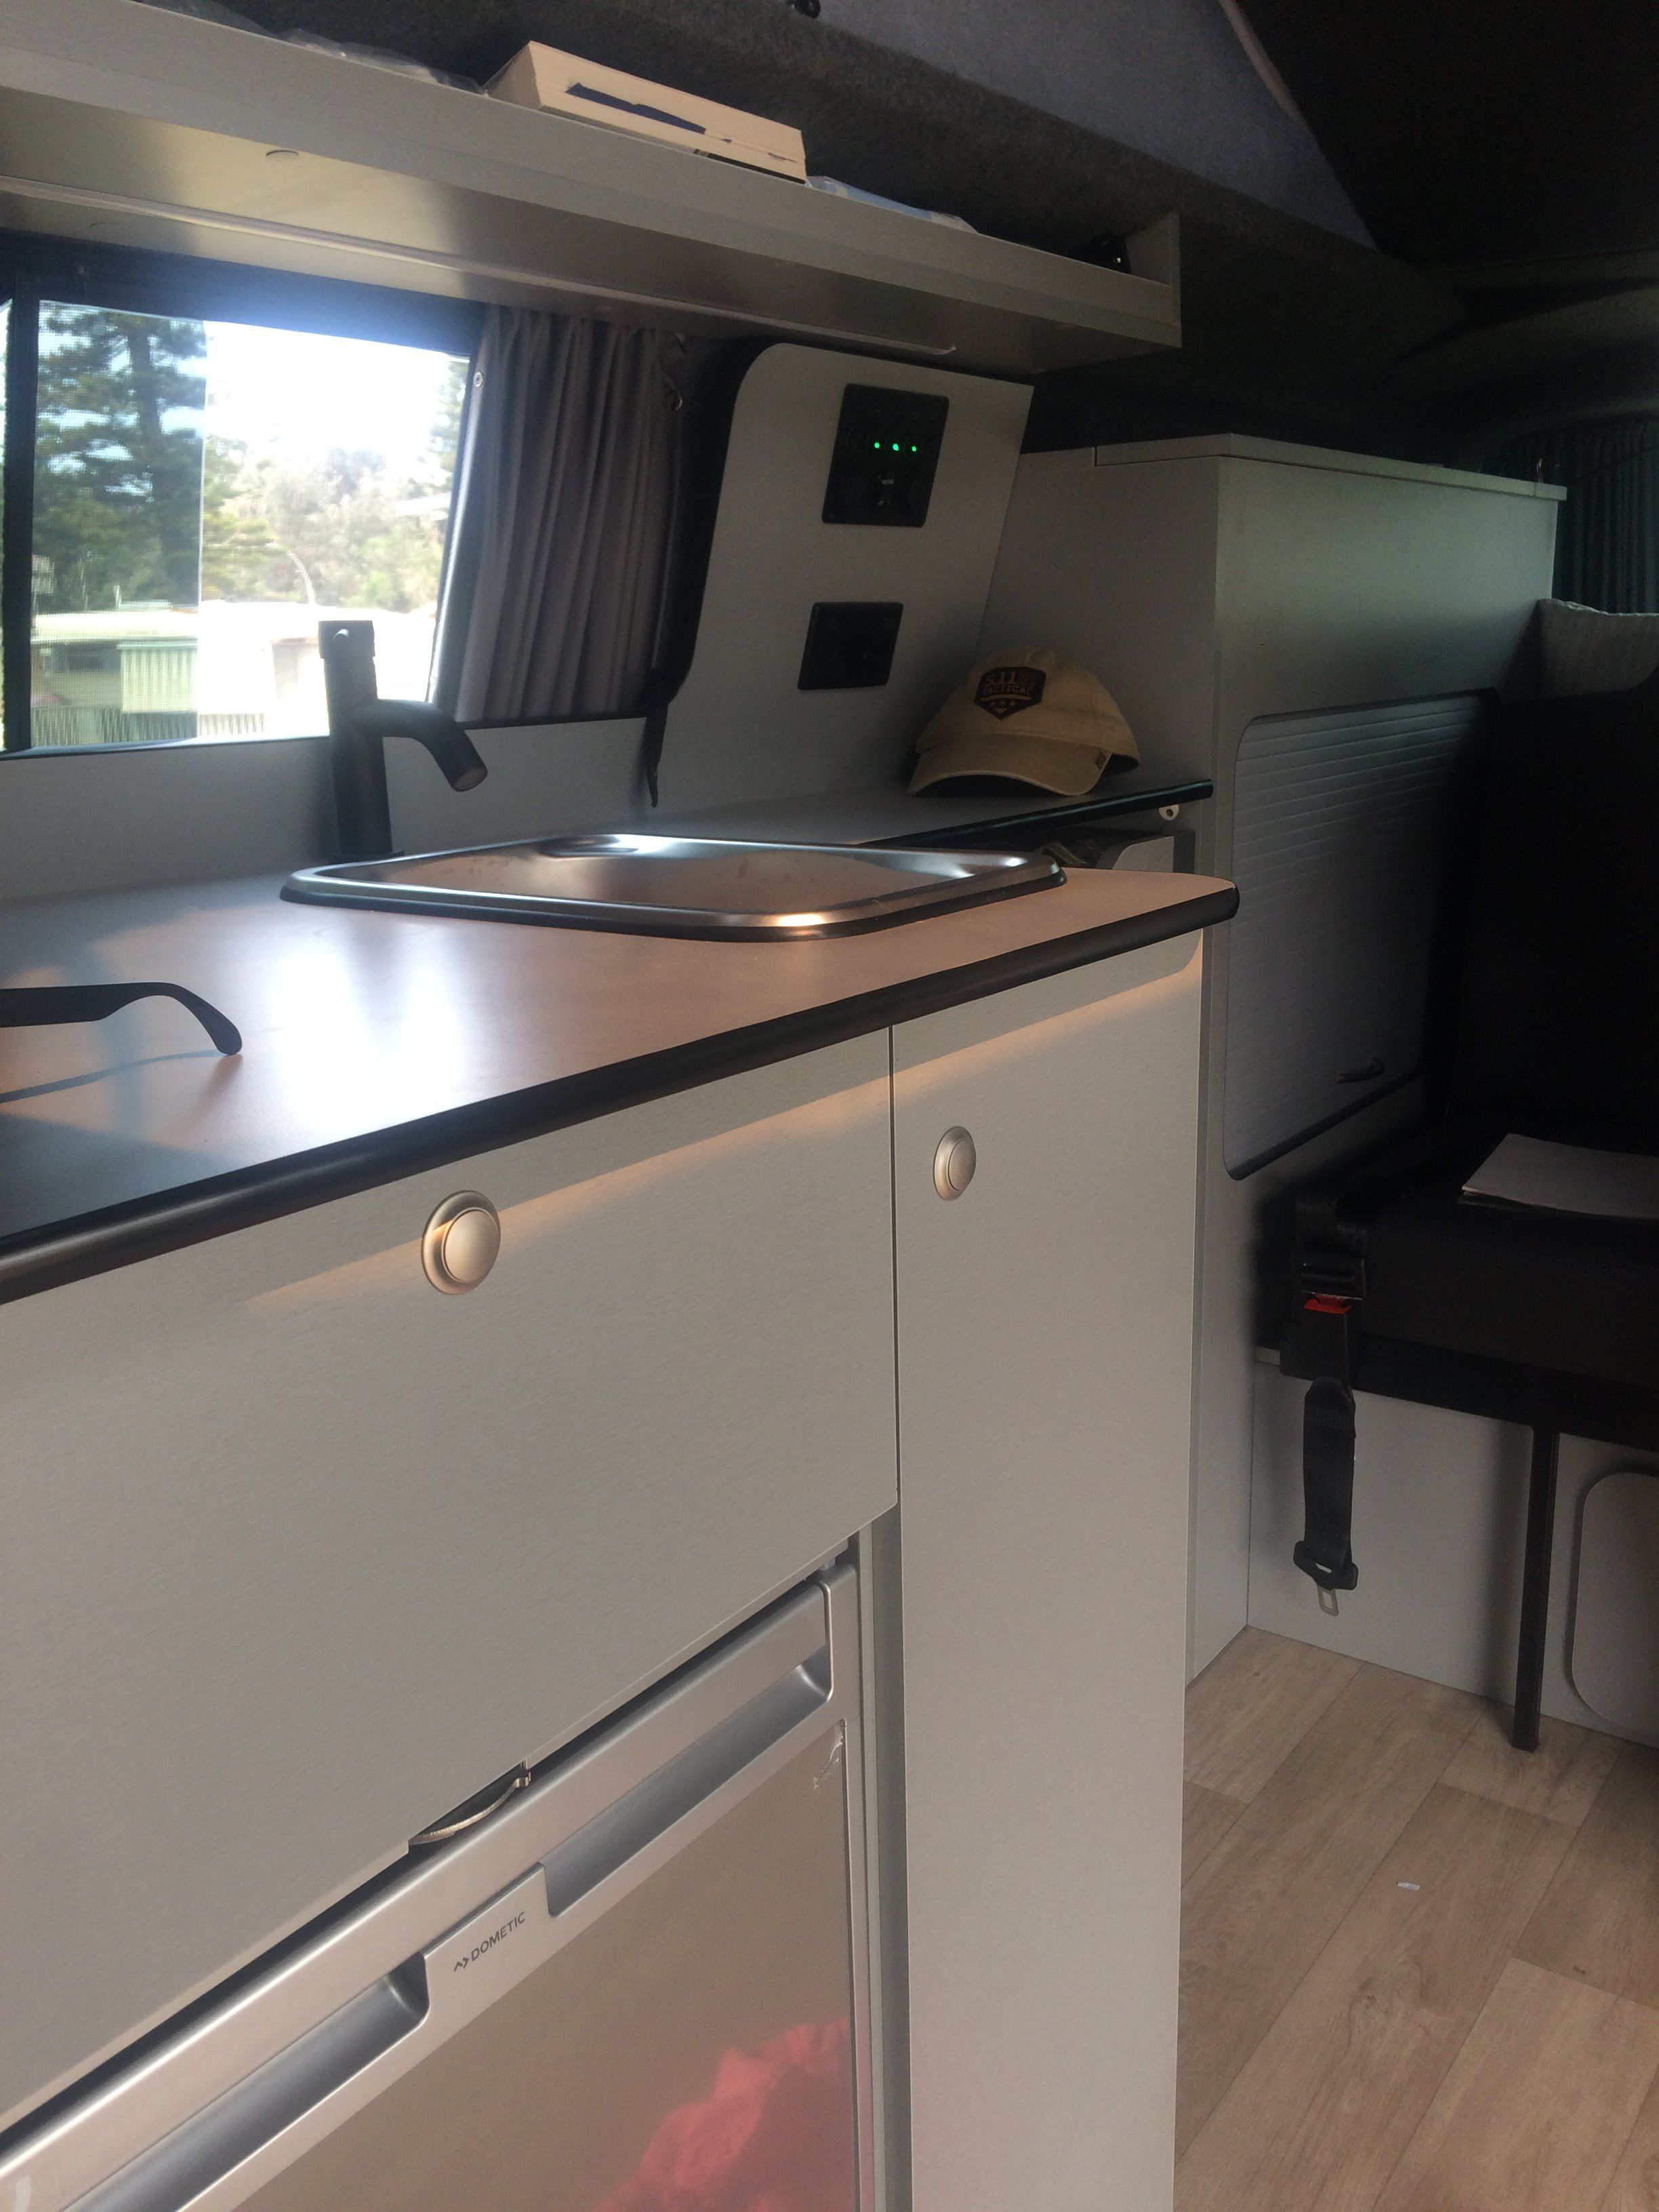 Does your car have a kitchen?.JPG